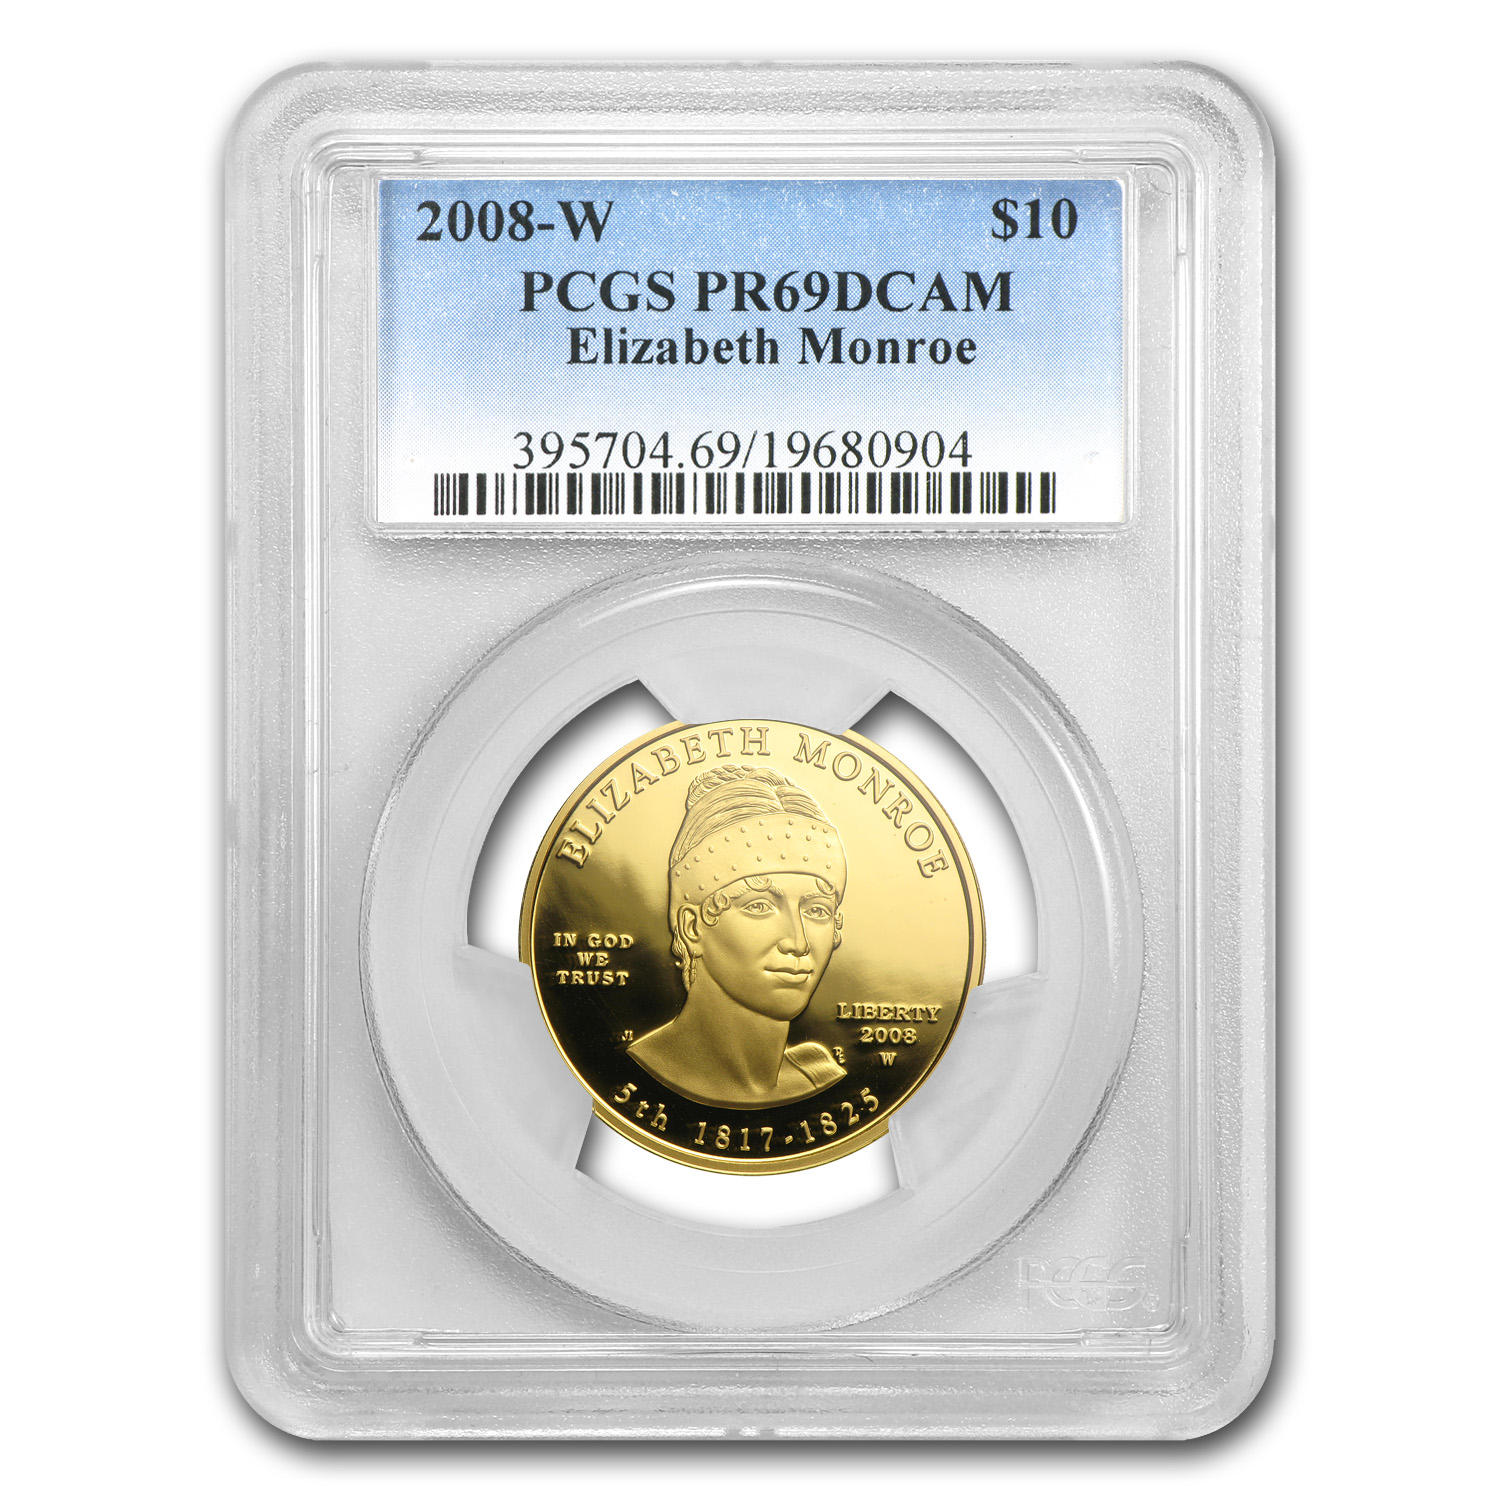 2008-W 1/2 oz Proof Gold Elizabeth Monroe PR-69 PCGS